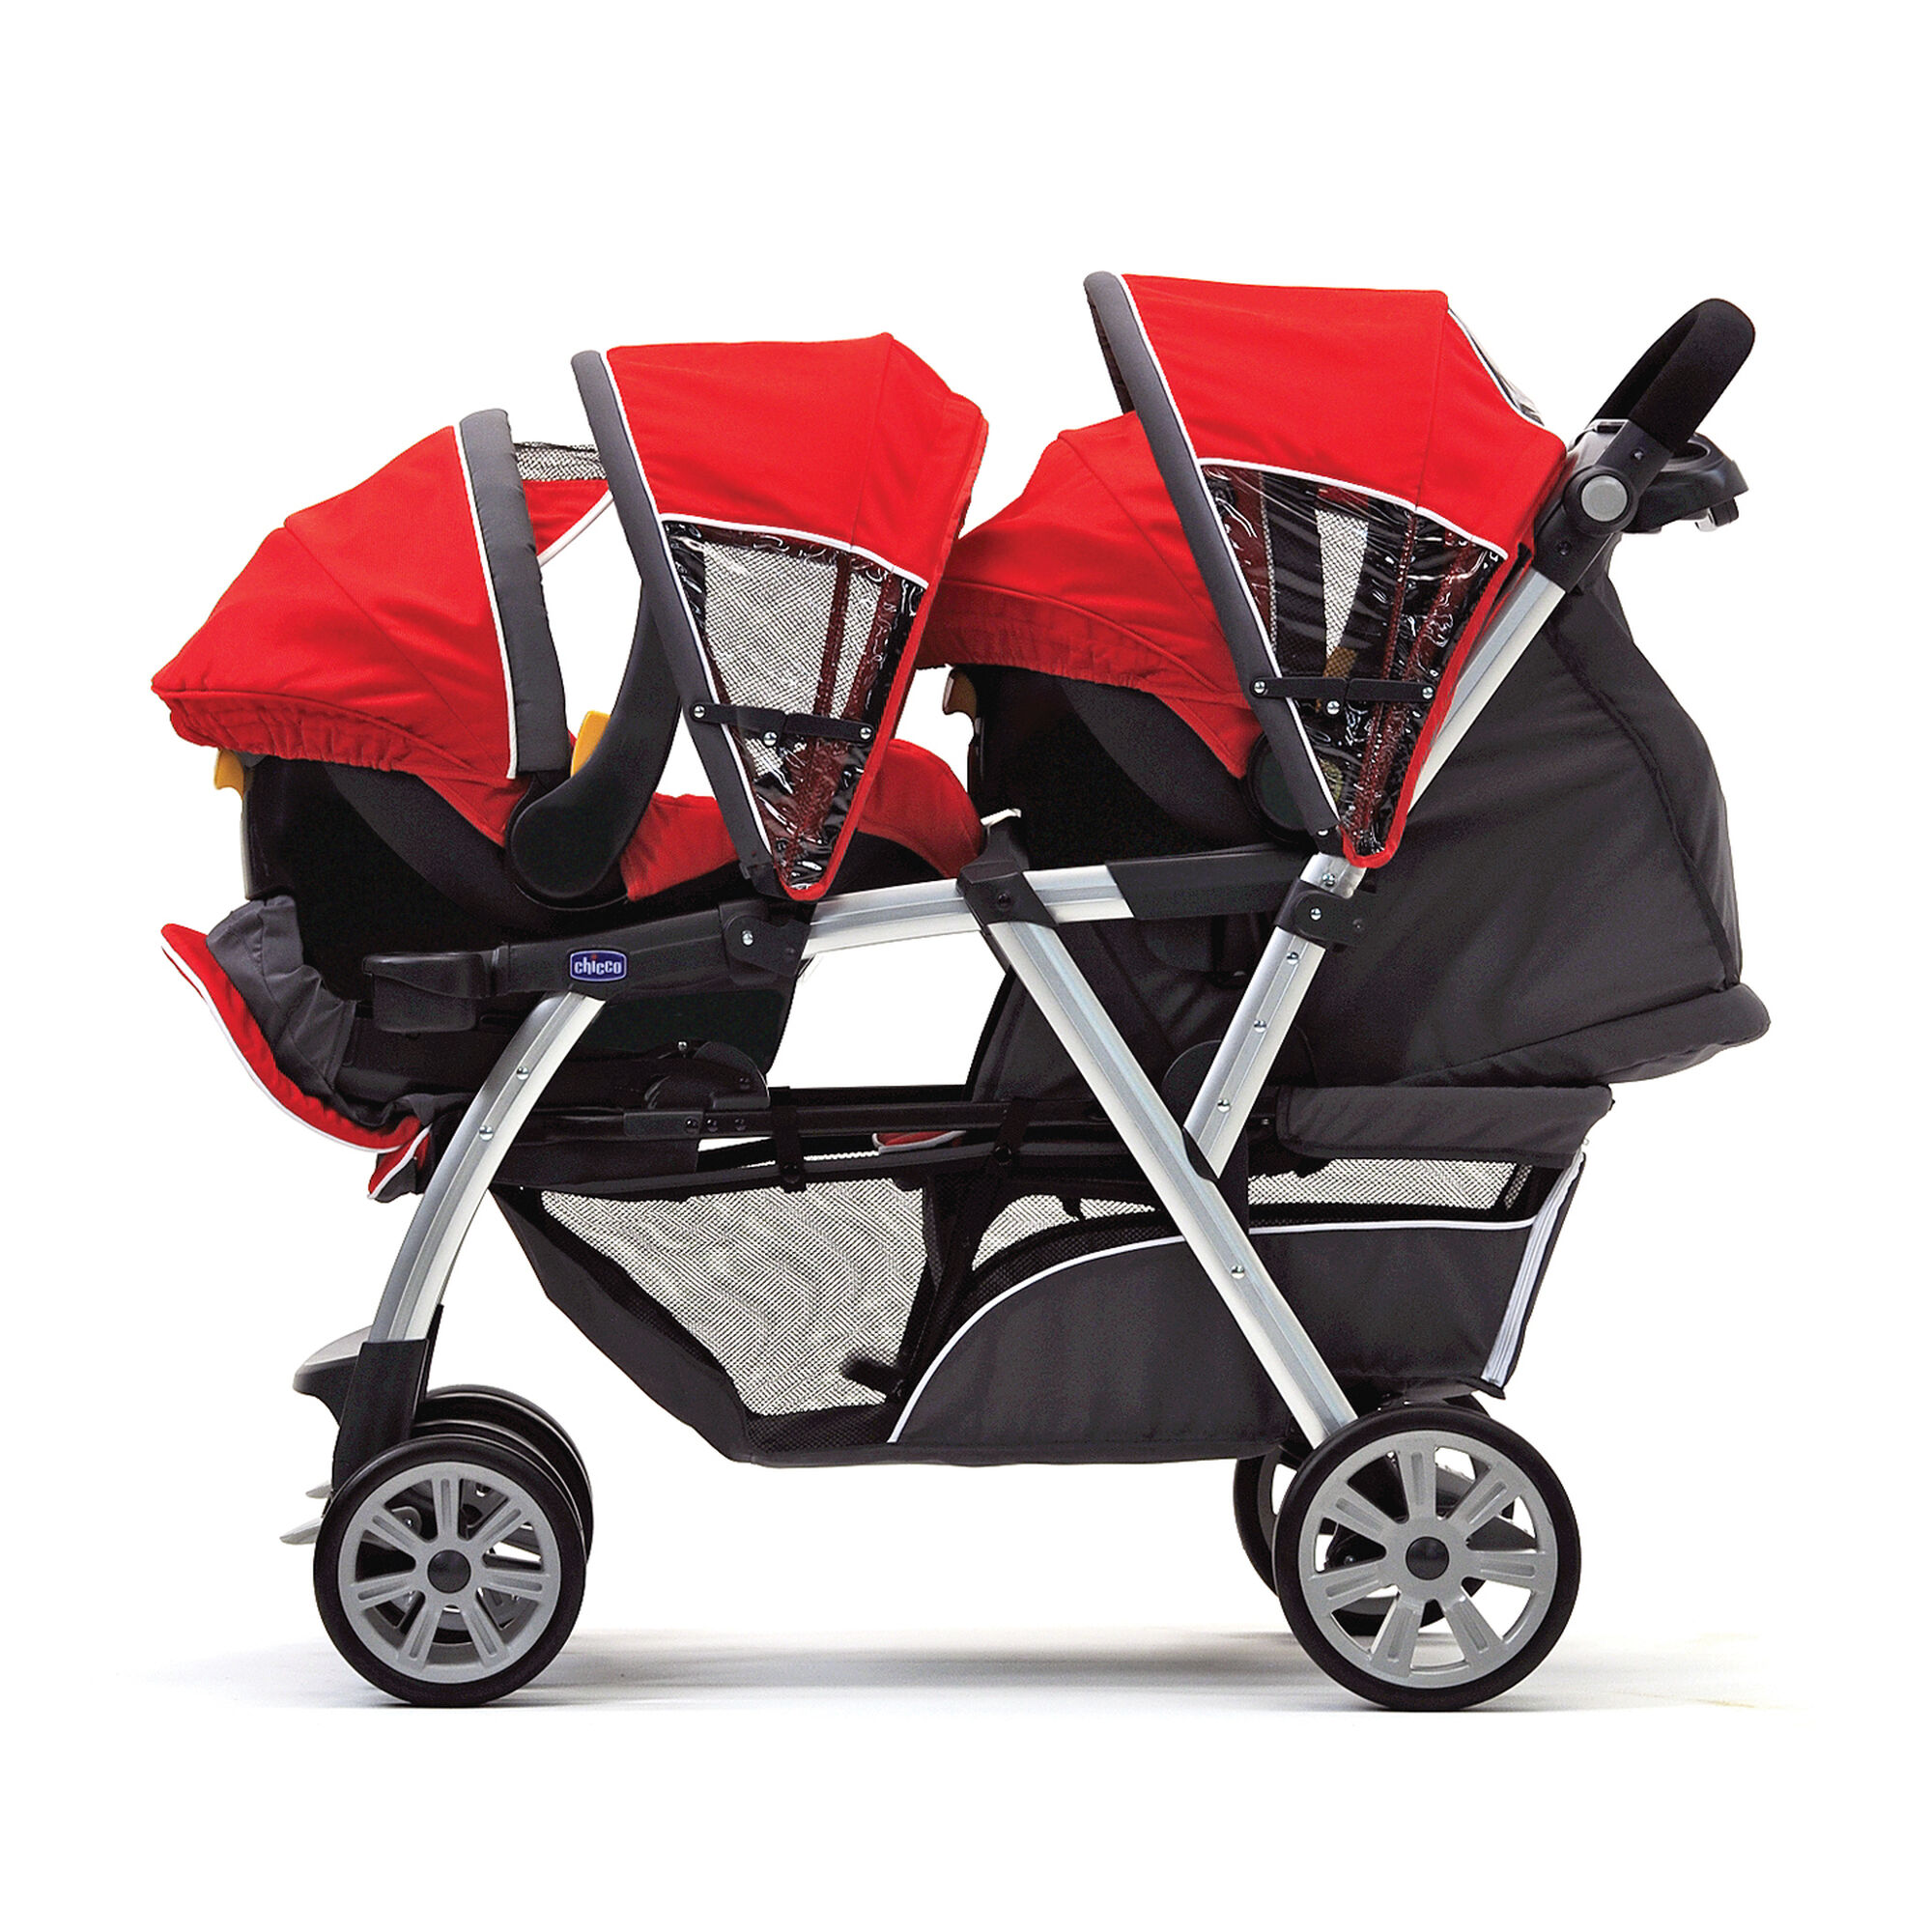 Shop Albee Baby For A Huge Selection Of Baby Gear Including Strollers, Car Seats, Carriers & More. Fast, Free Shipping. Trusted Since !